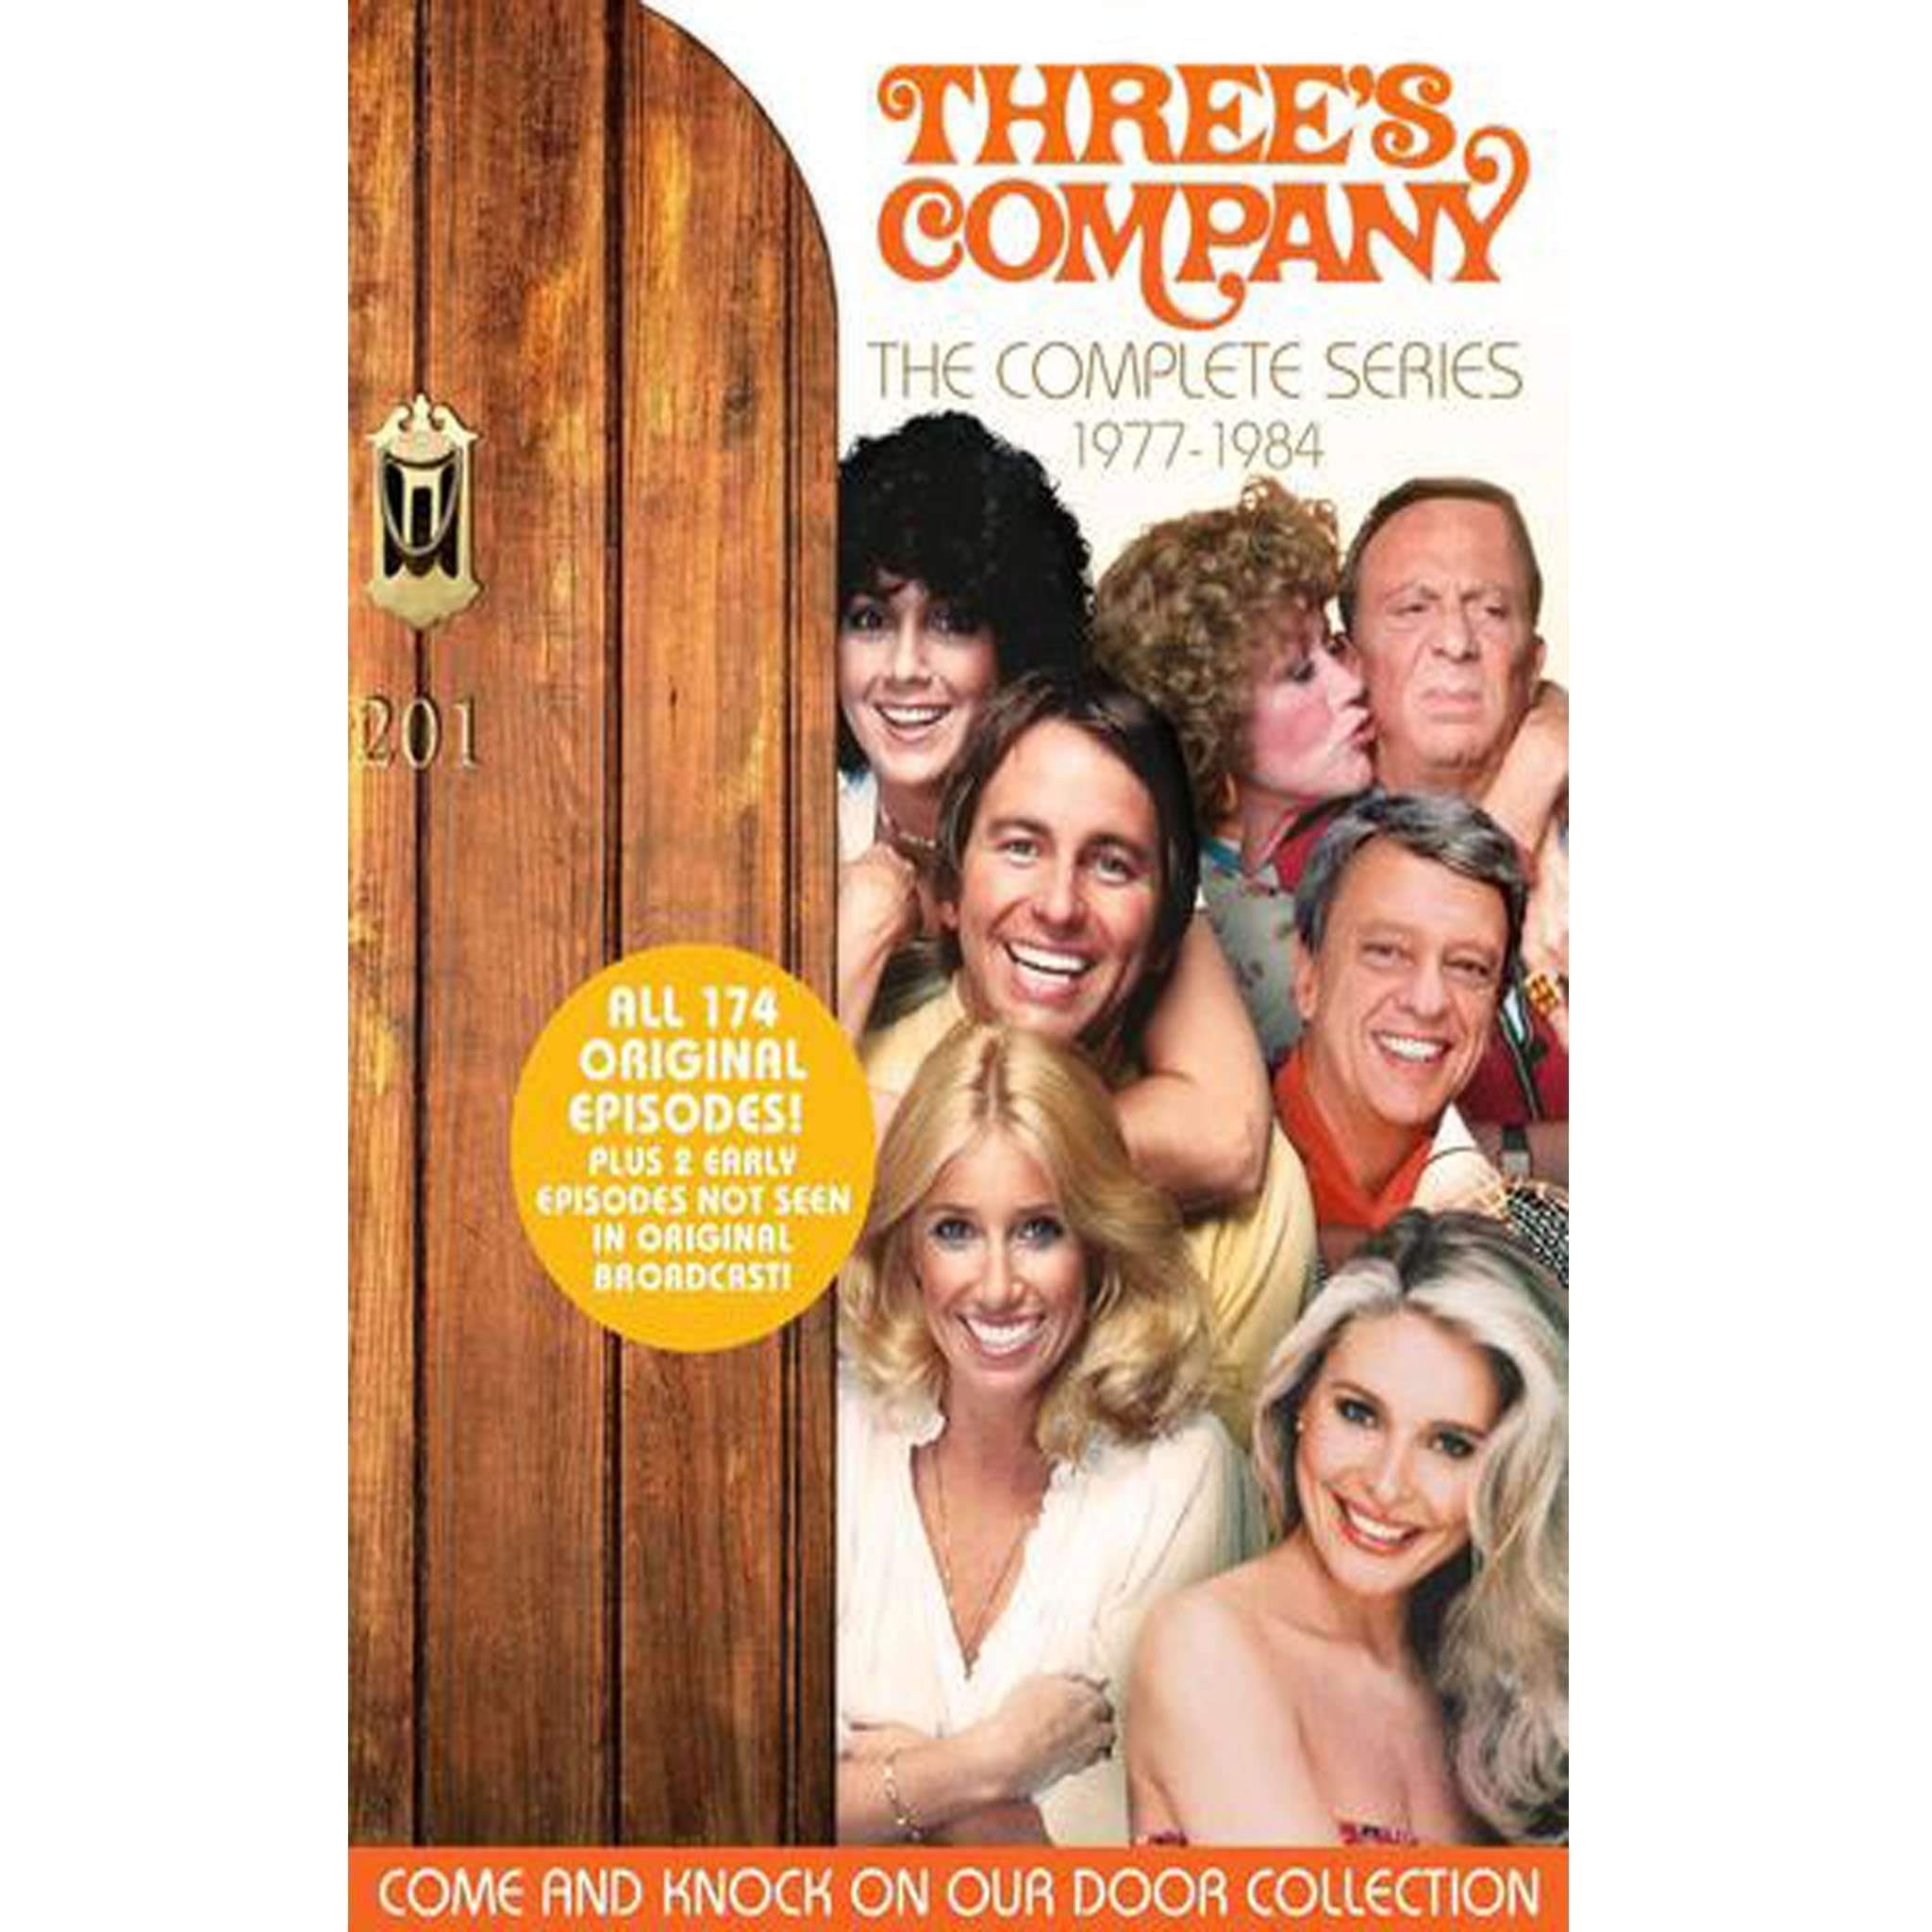 Three's Company: The Complete Series (DVD) - DVDsHQ